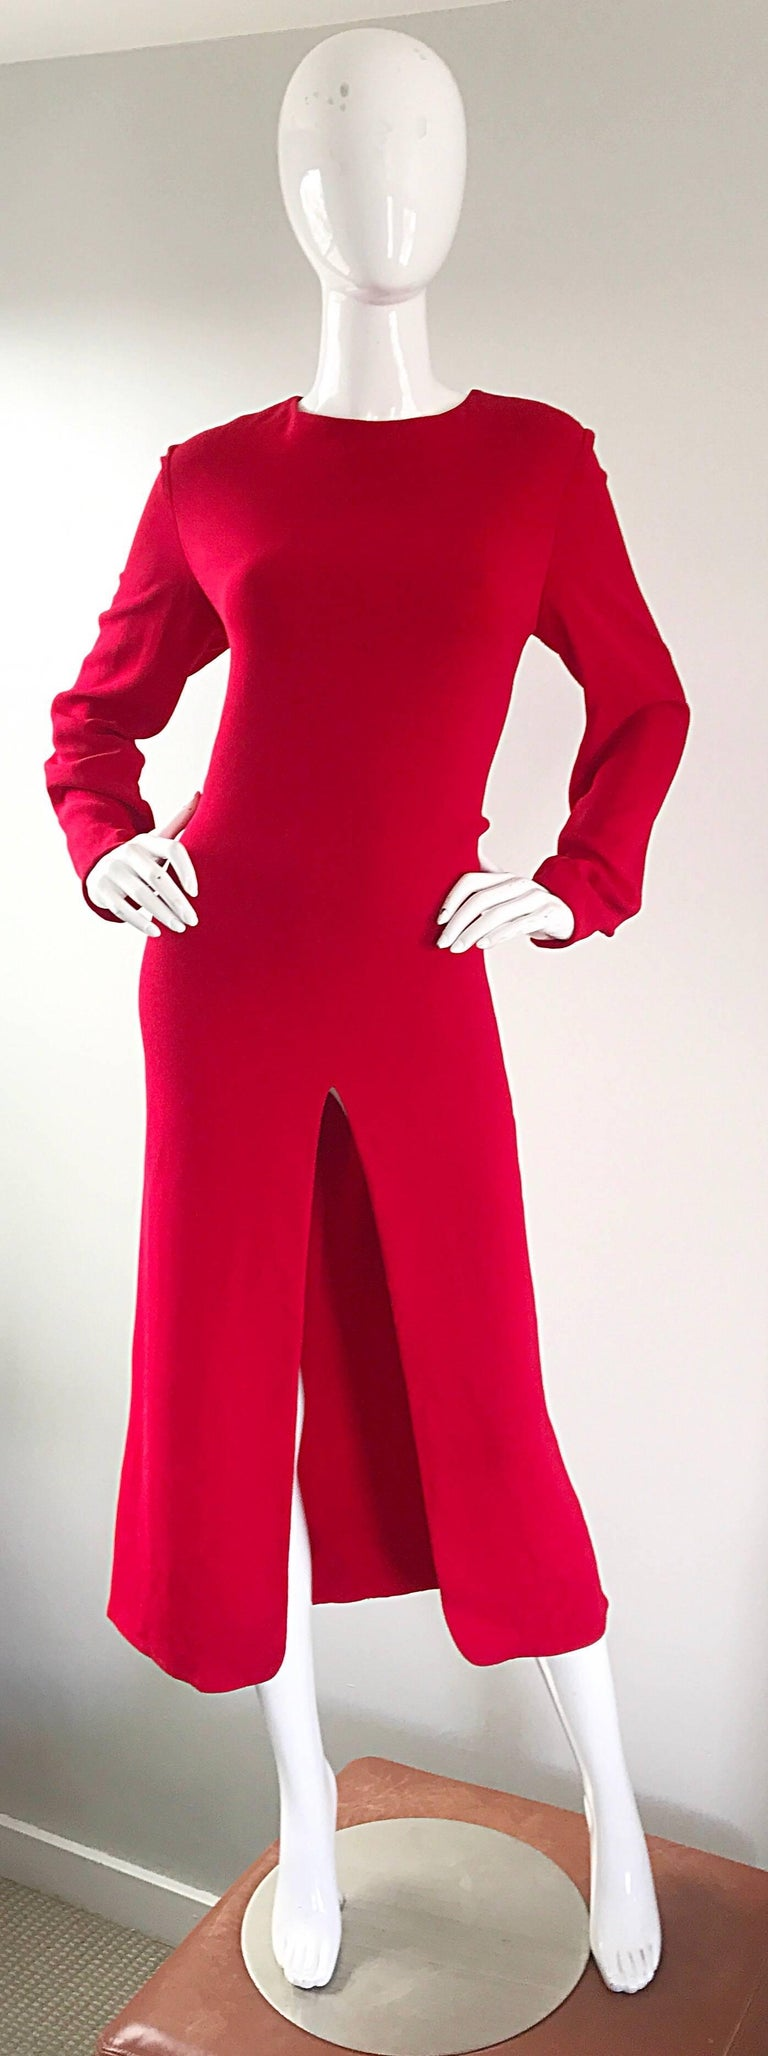 1990s Badgley Mischka Size 10 / 12 Lipstick Red Long Sleeve 90s Evening Dress 3